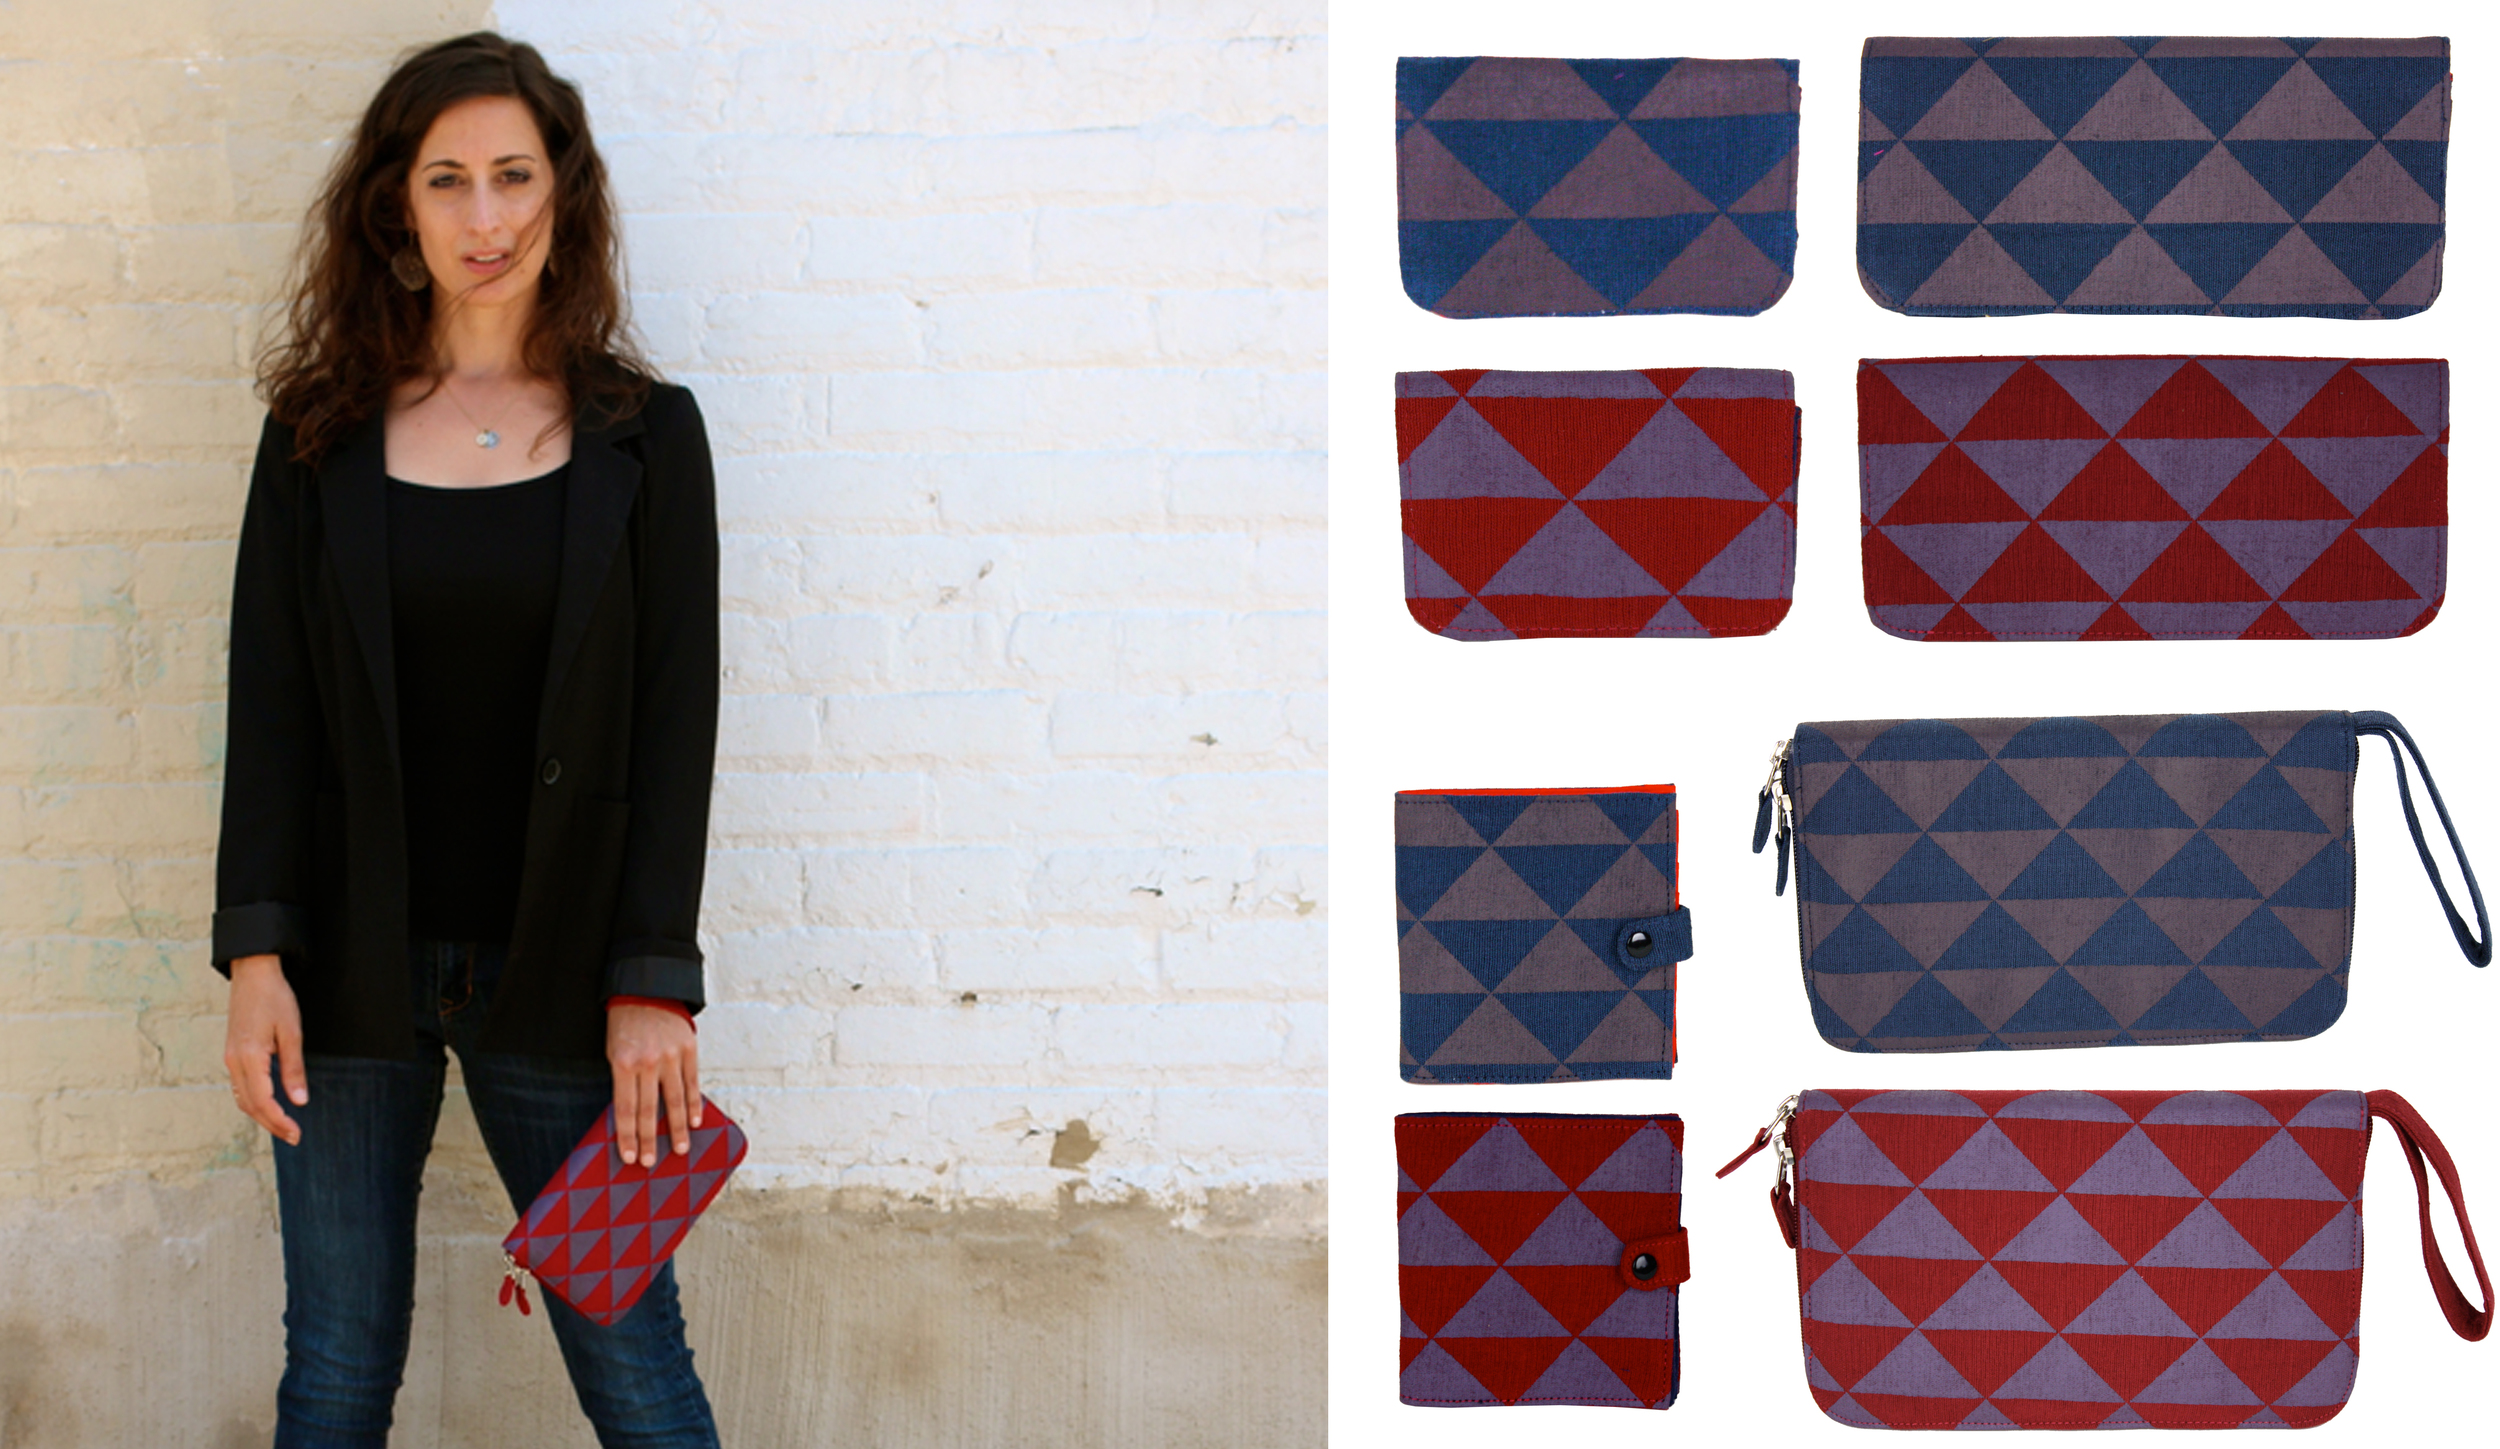 Textile Design by Shifra Whiteman. Wallet by Malia Designs.